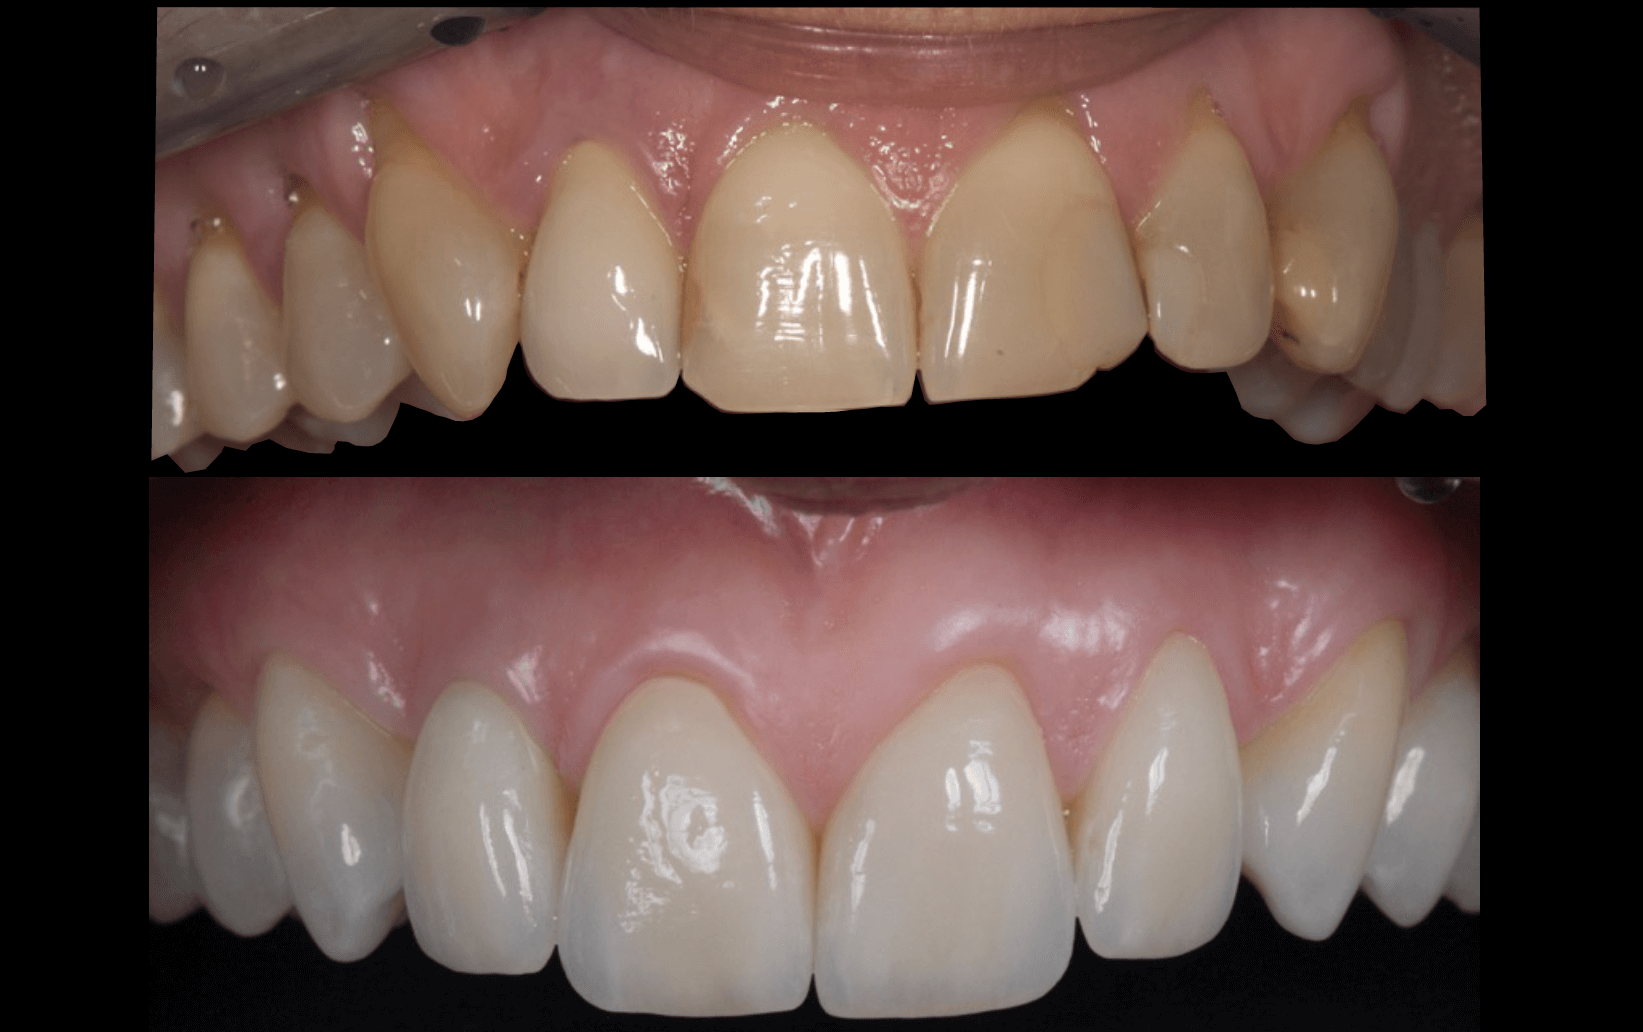 Case 30 | Prosthodontic Award 2015 | Italy